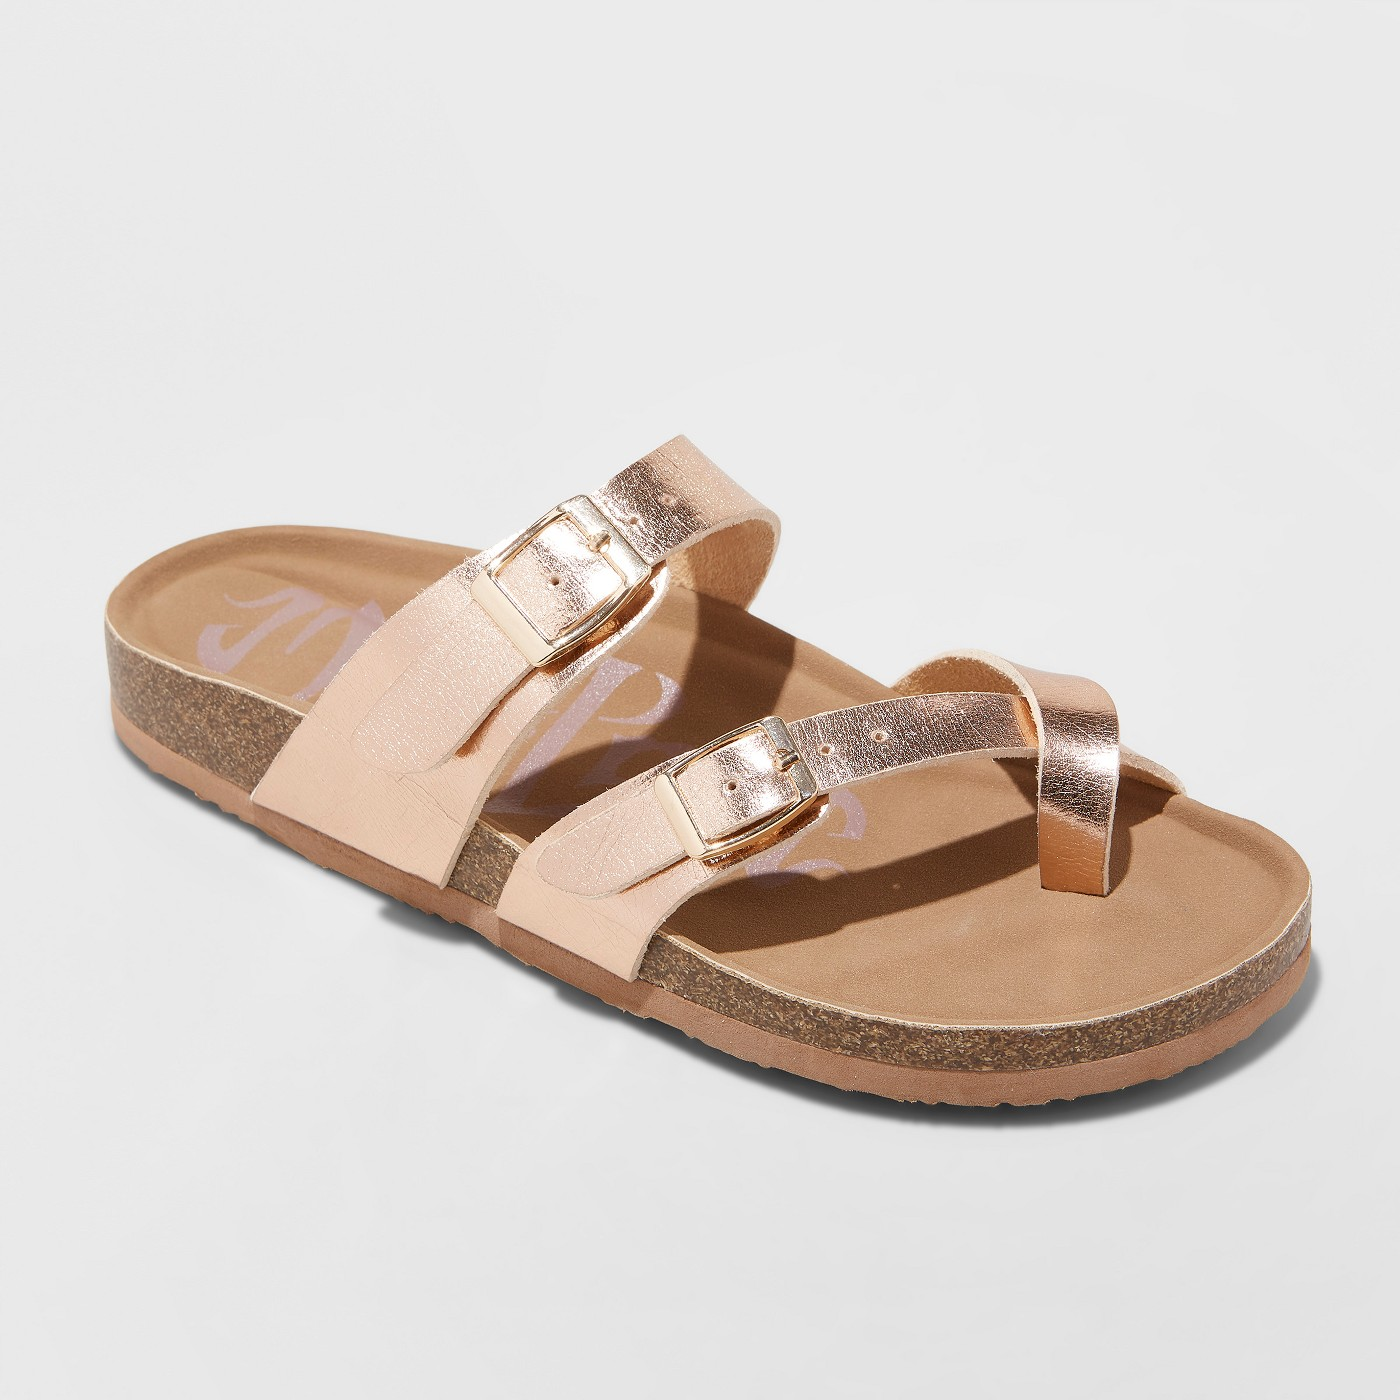 Women's Mad Love Prudence Footbed Sandal - image 1 of 3